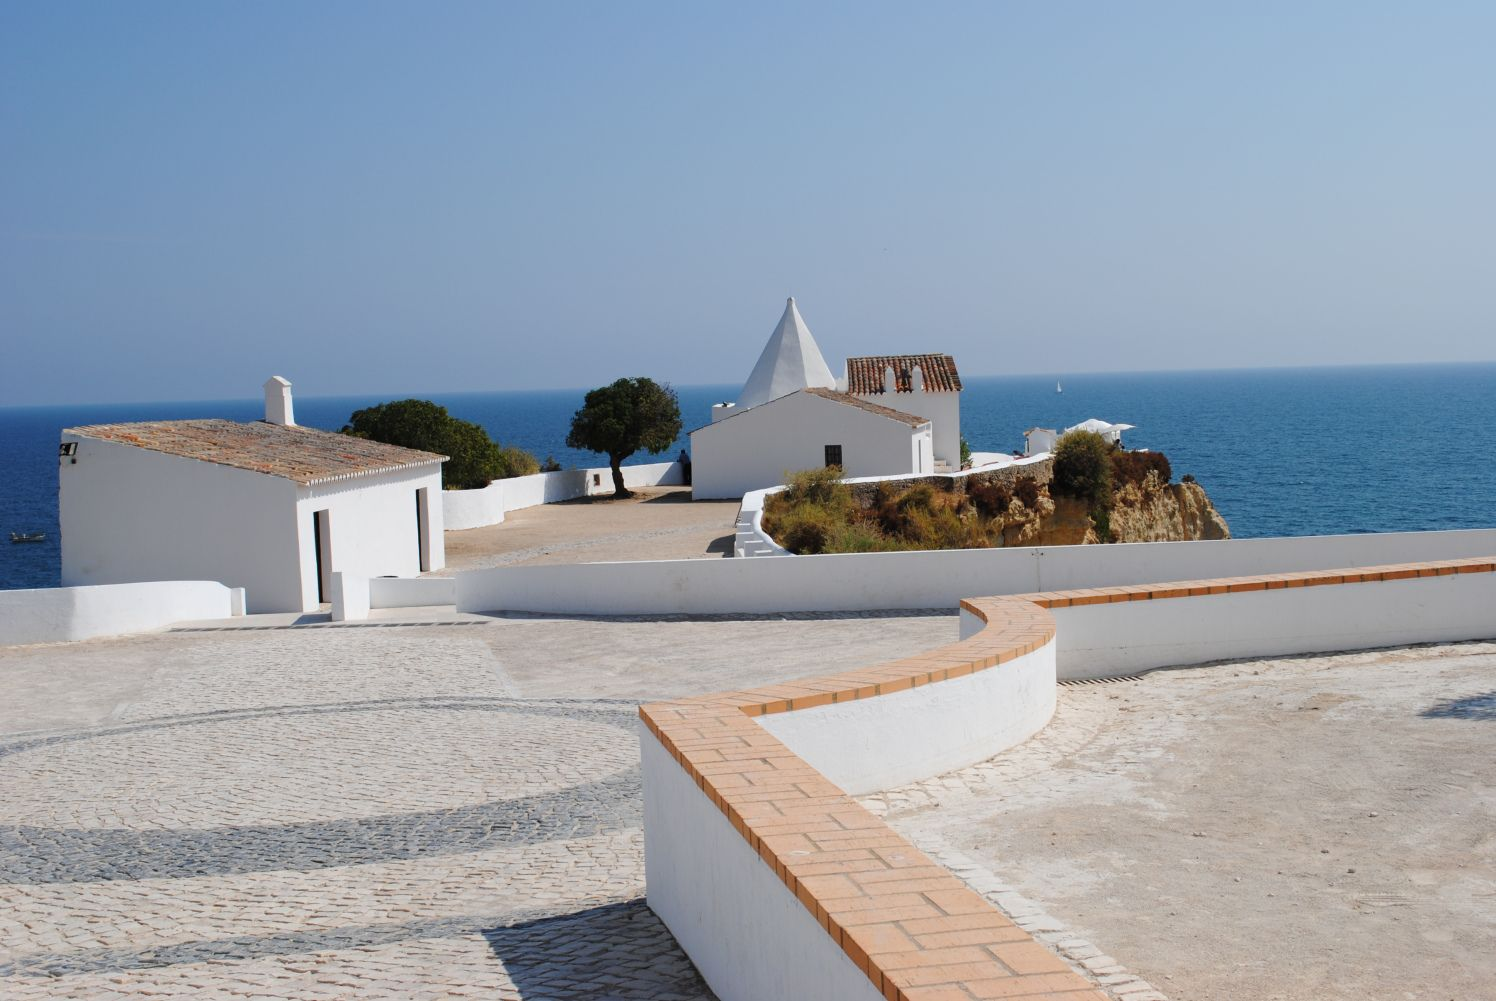 We got married on a clifftop called Senhora da Rocha, in Portugal. It's one of the most beautiful locations we have ever visited and has this lovely chapel to admire too. It was a good price …